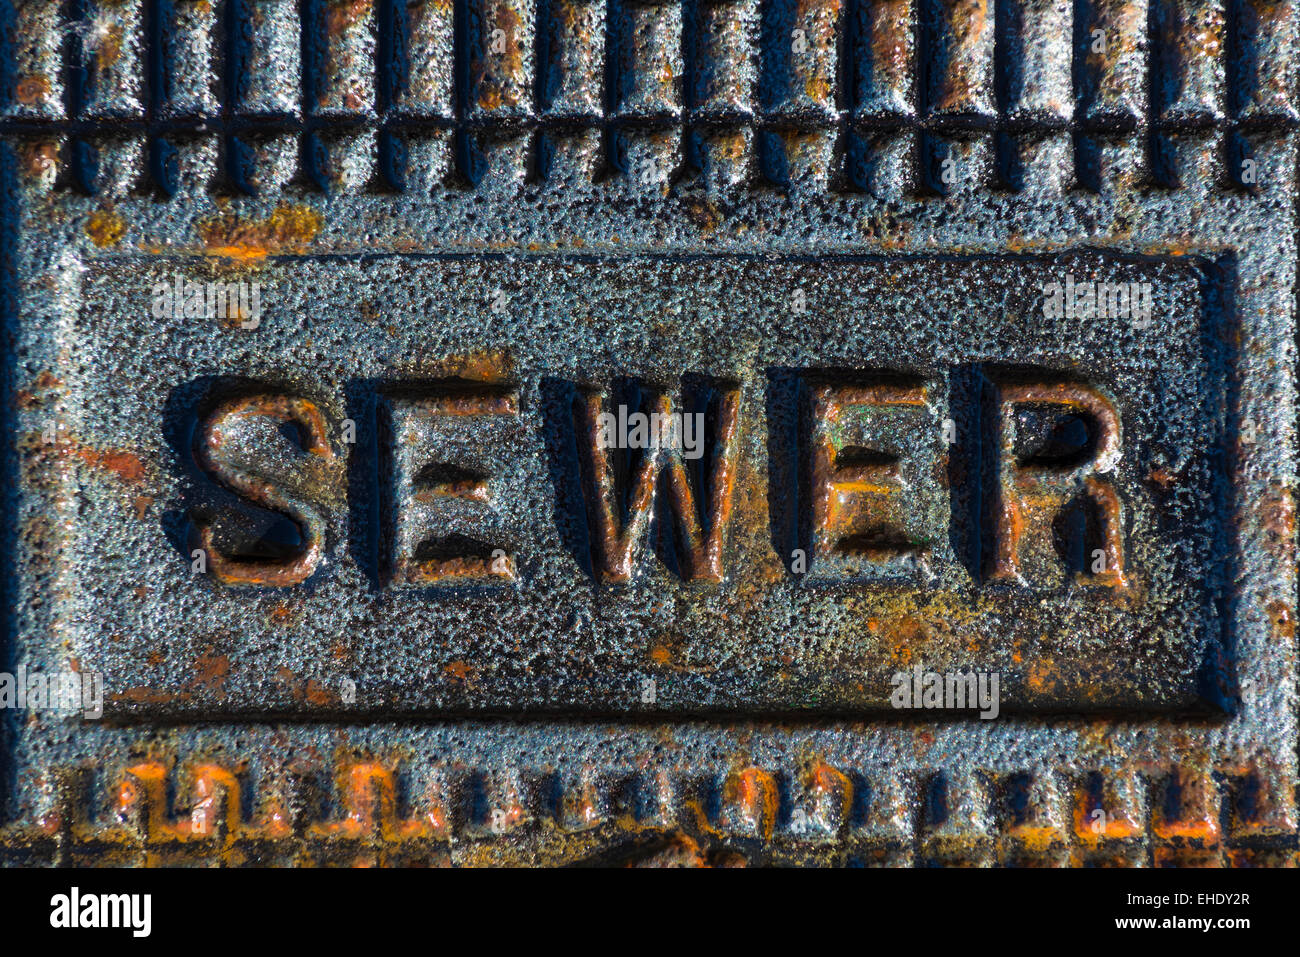 A sewer access cover with rusty iron printing - Stock Image